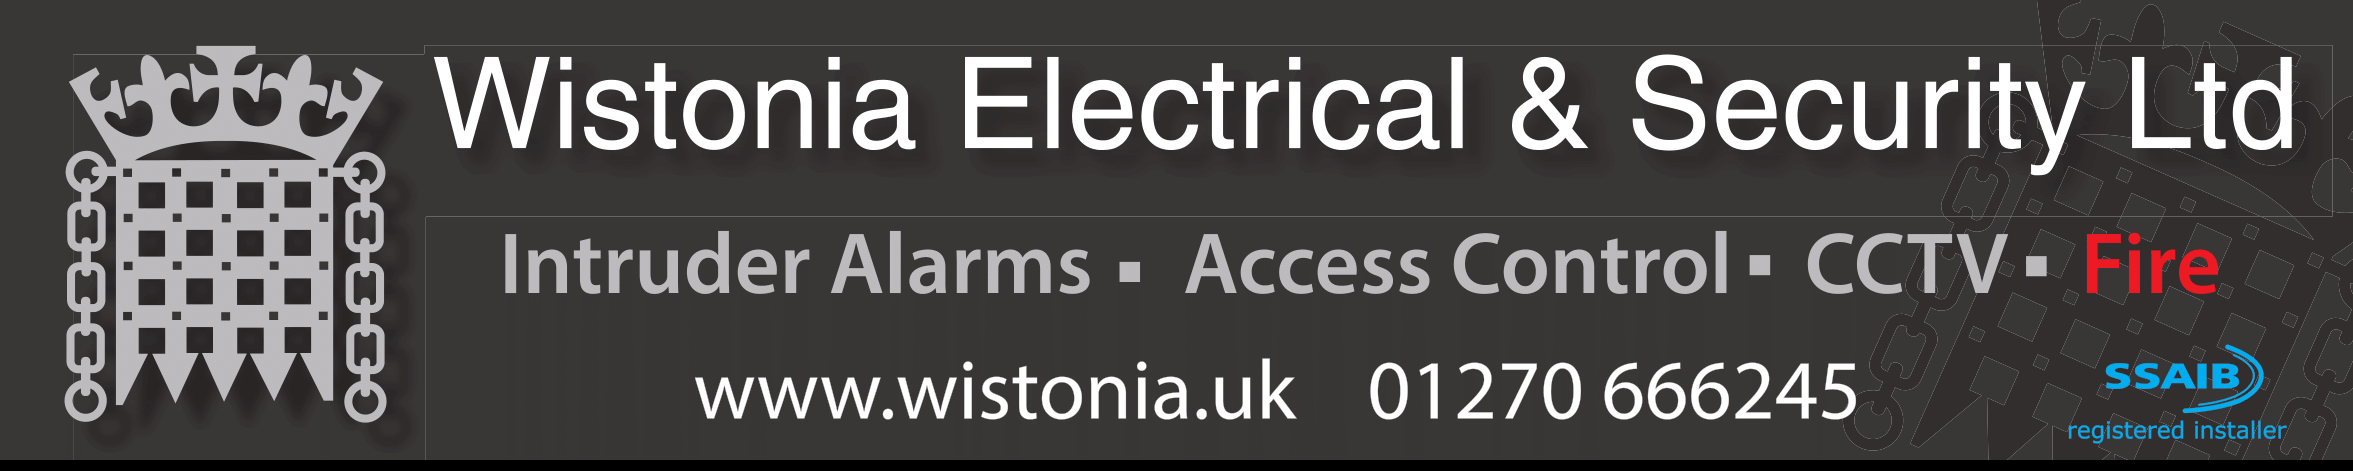 Wistonia Electrical & Security LTD